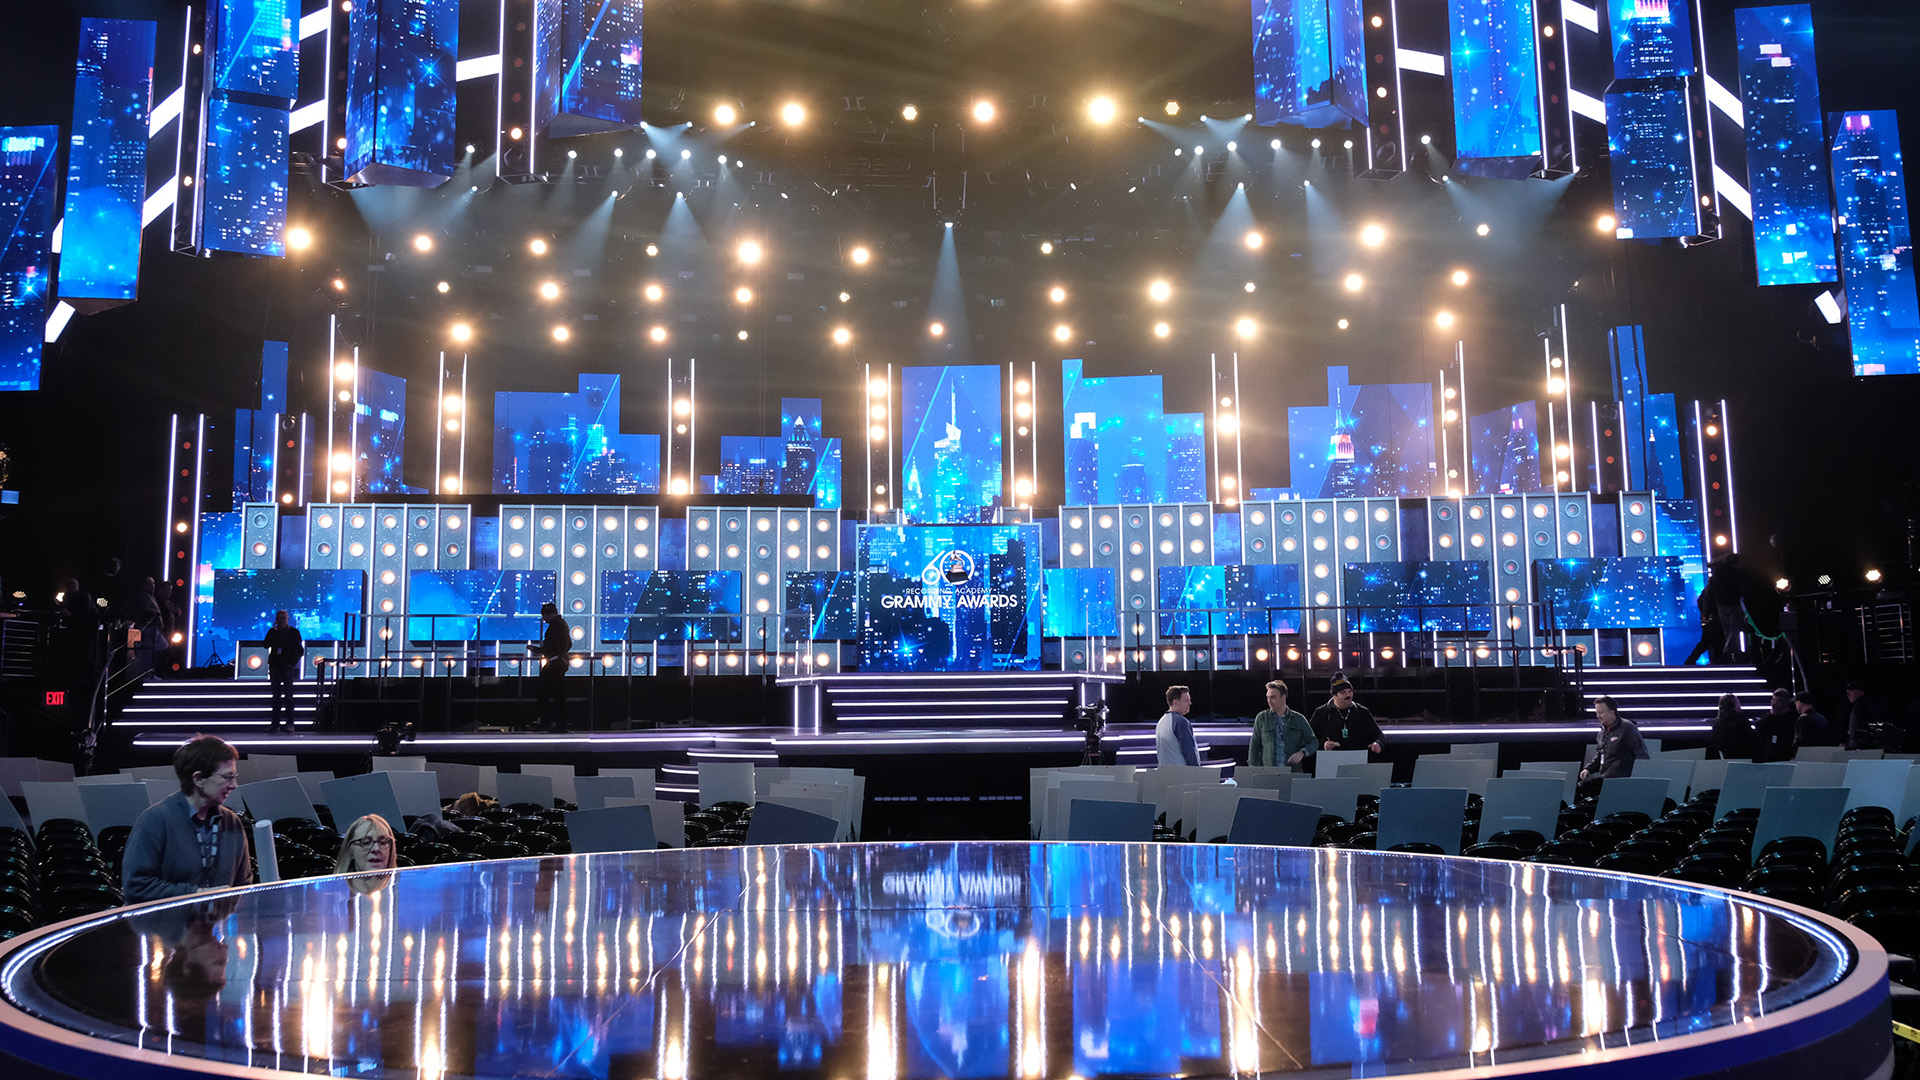 Here's a glimpse of the 60th Annual GRAMMY Awards® stage set up.